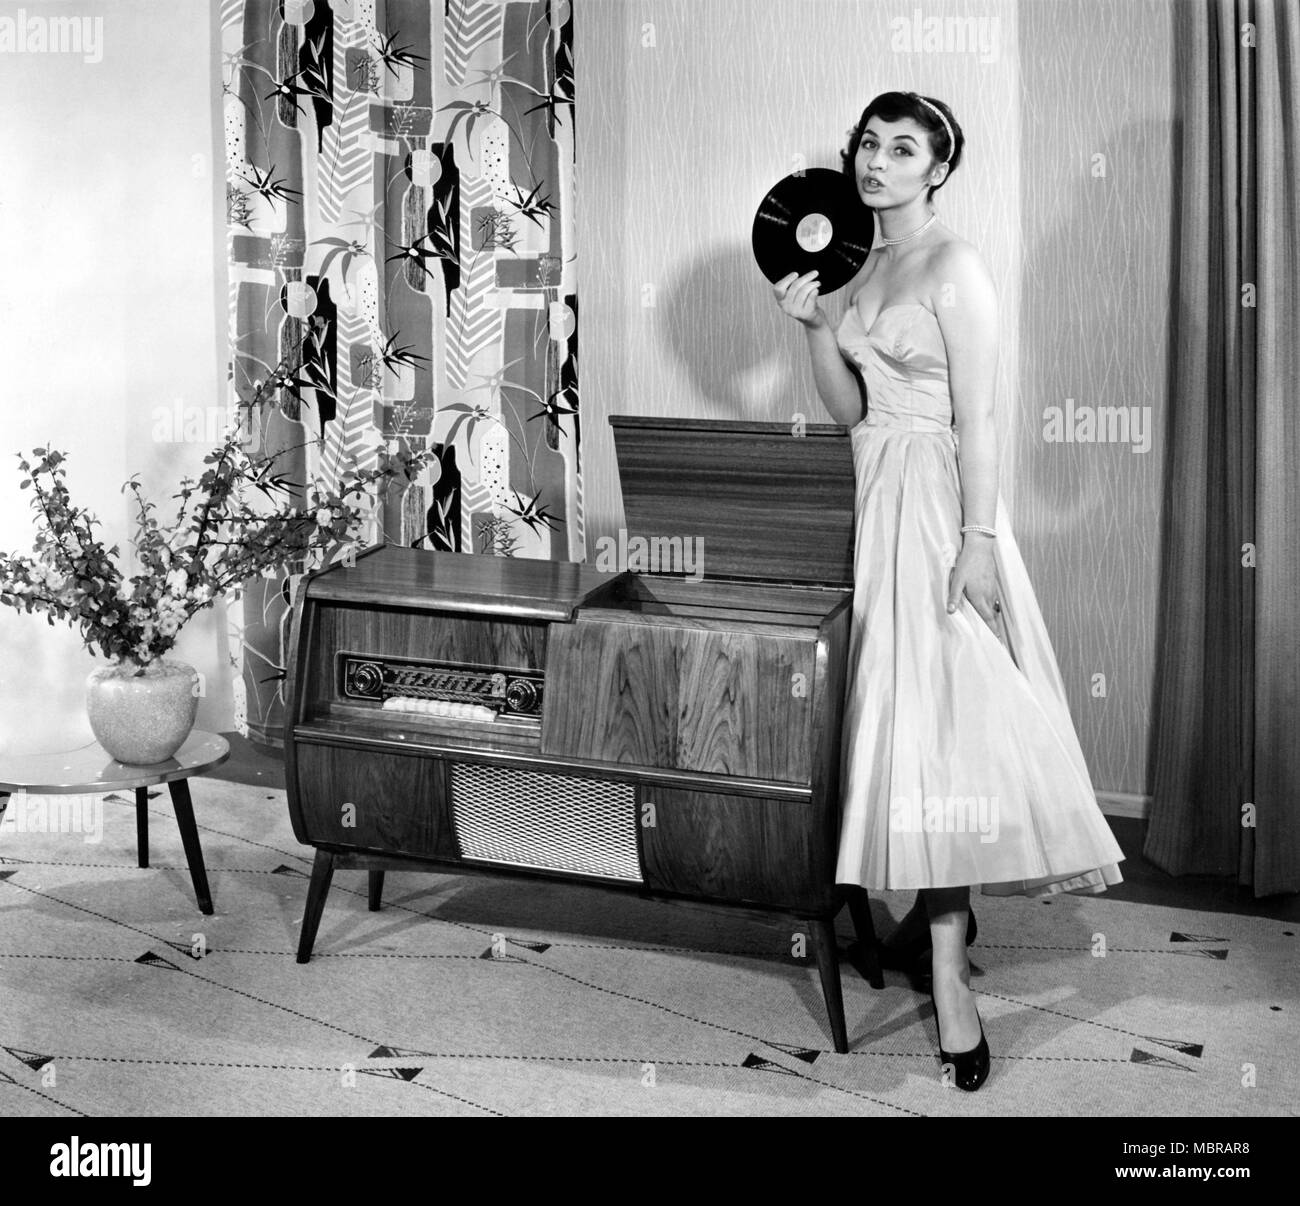 Woman in front of a record player in the living room, 1950s, Germany - Stock Image